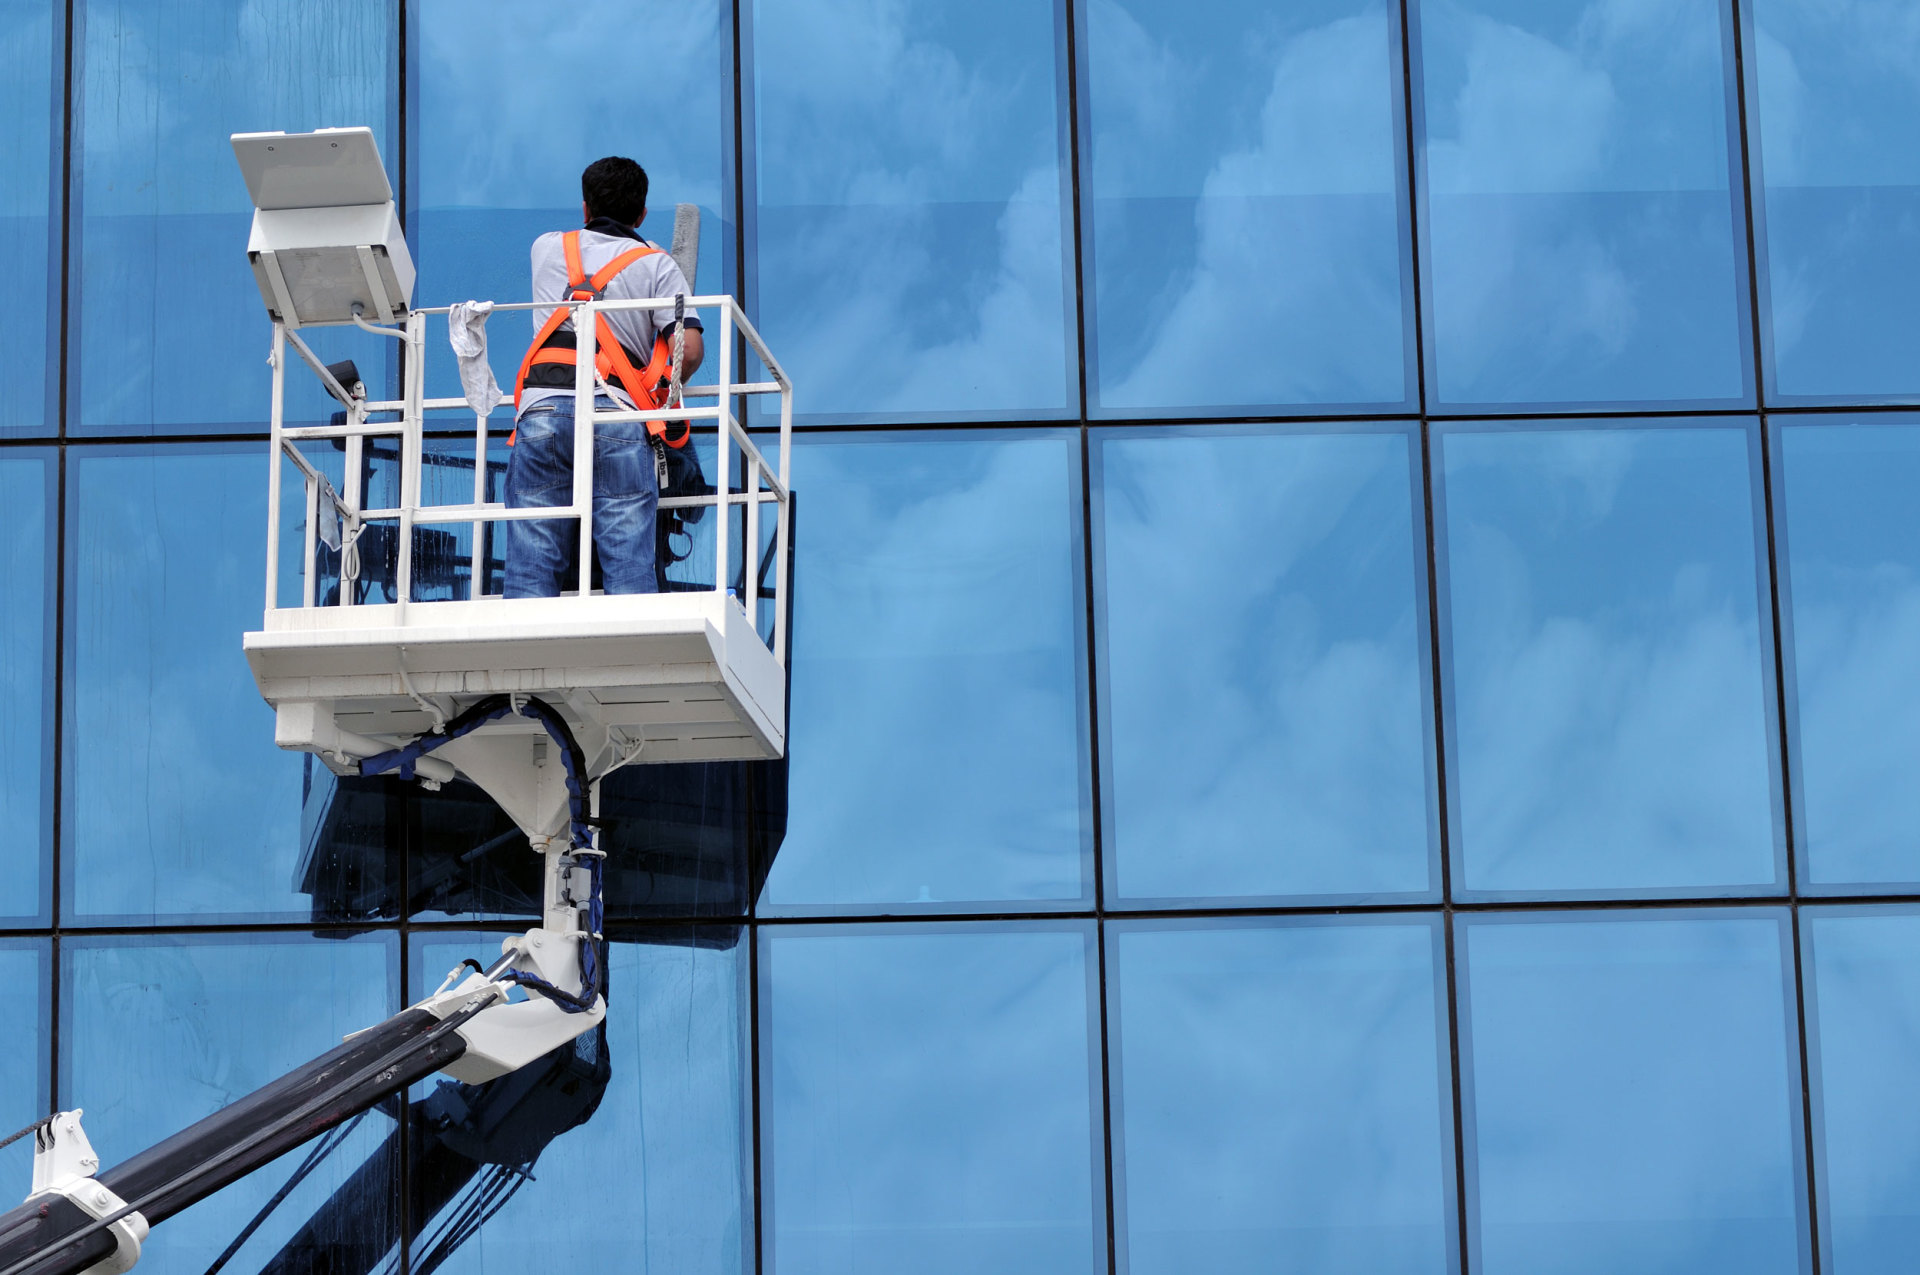 Person cleaning windows on commercial building using lift.